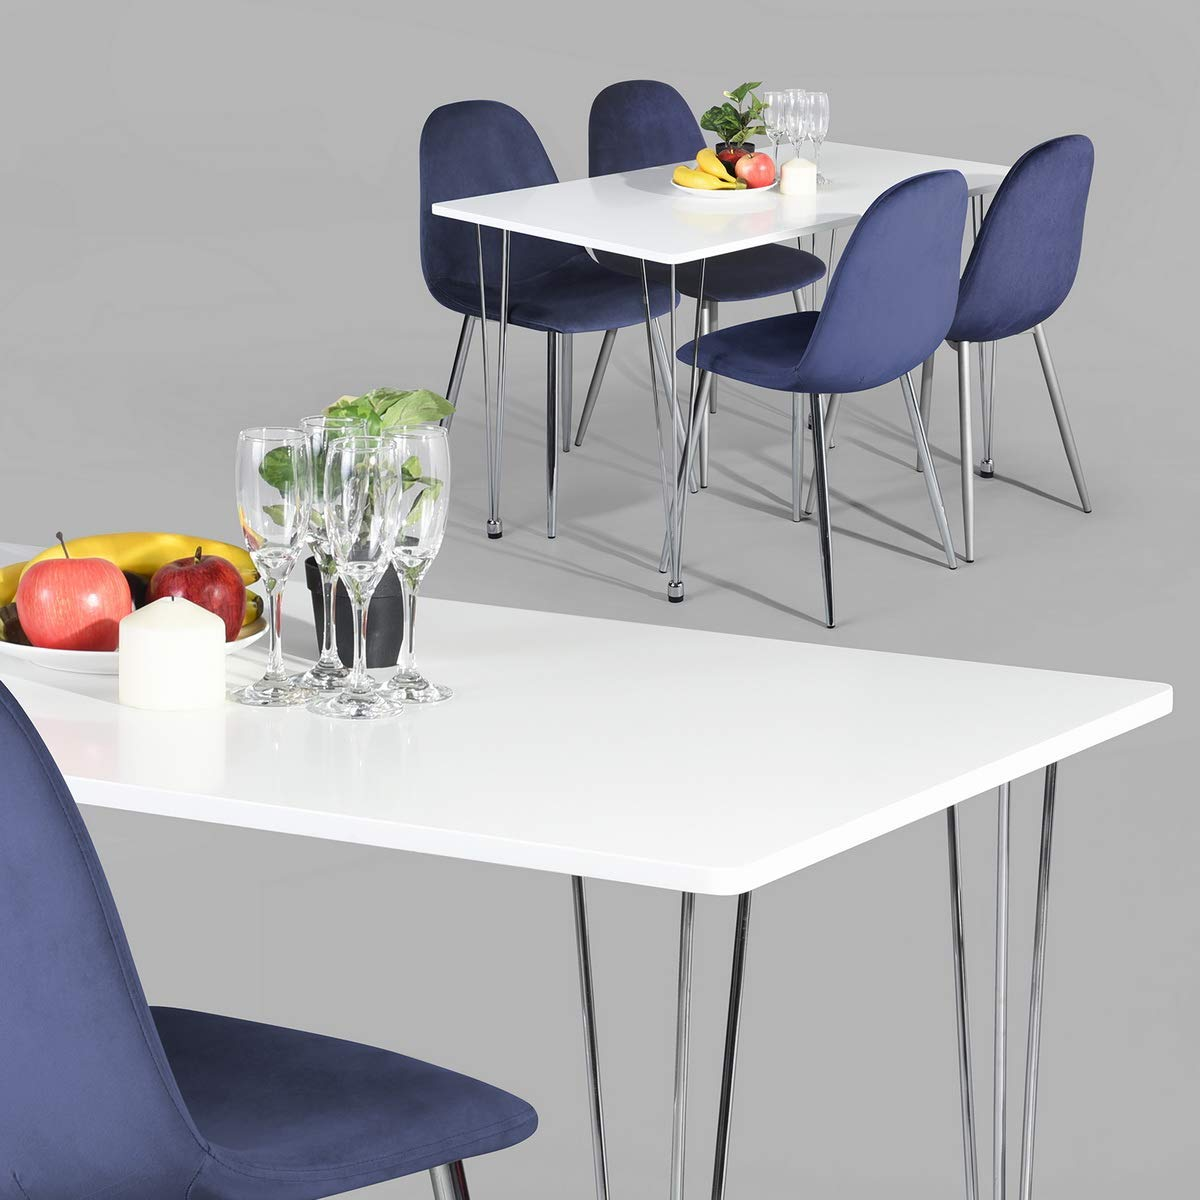 Kitchen Dining Table, Mid Century Modern Industrial Home Dining Room Table Compatible with Hairpin Legs, White Office Balcony Leisure Table